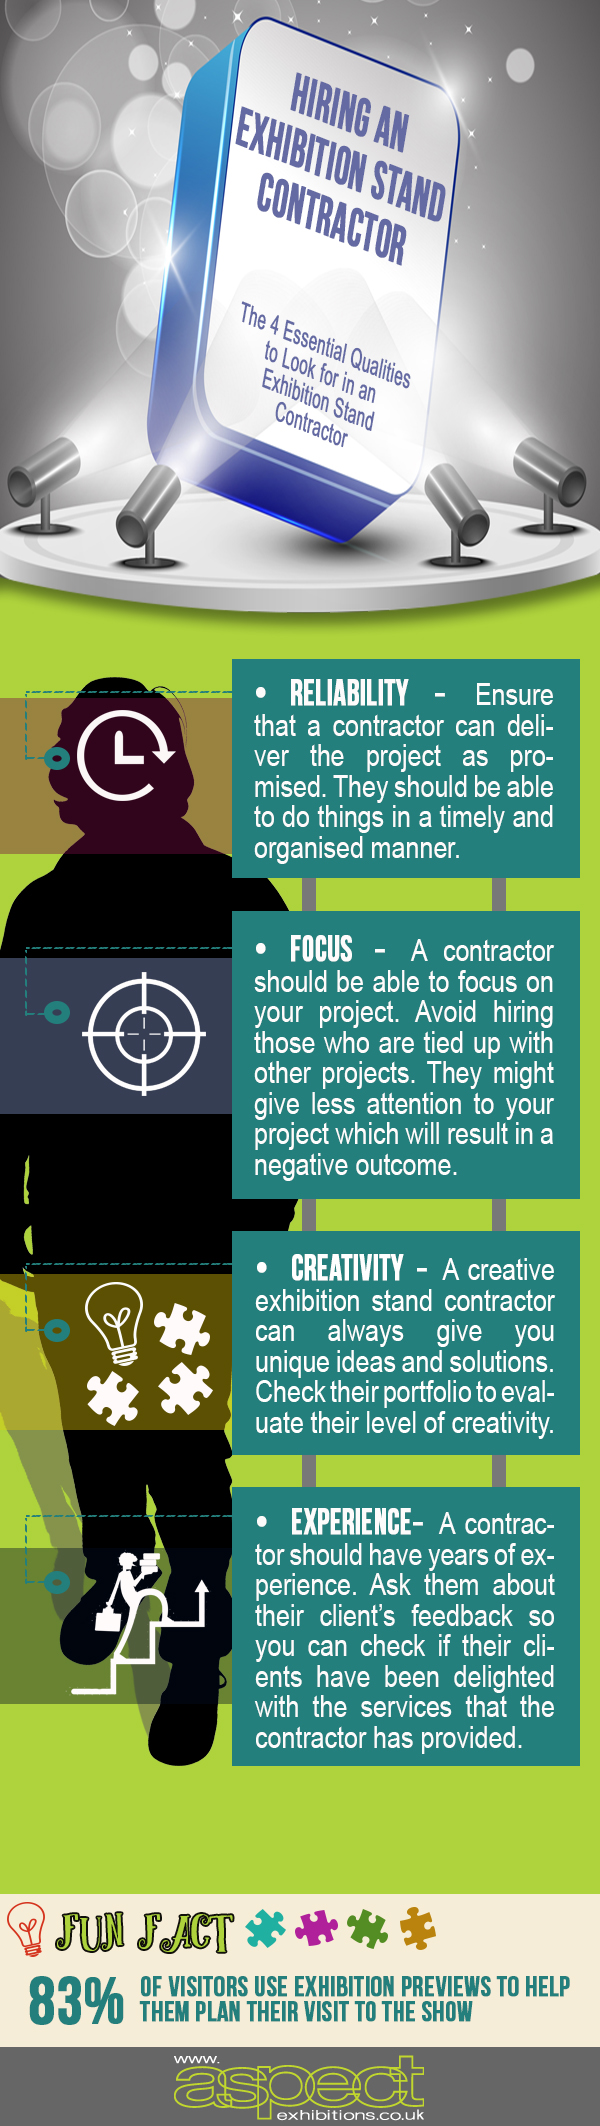 HIRING AN EXHIBITION STAND CONTRACTOR